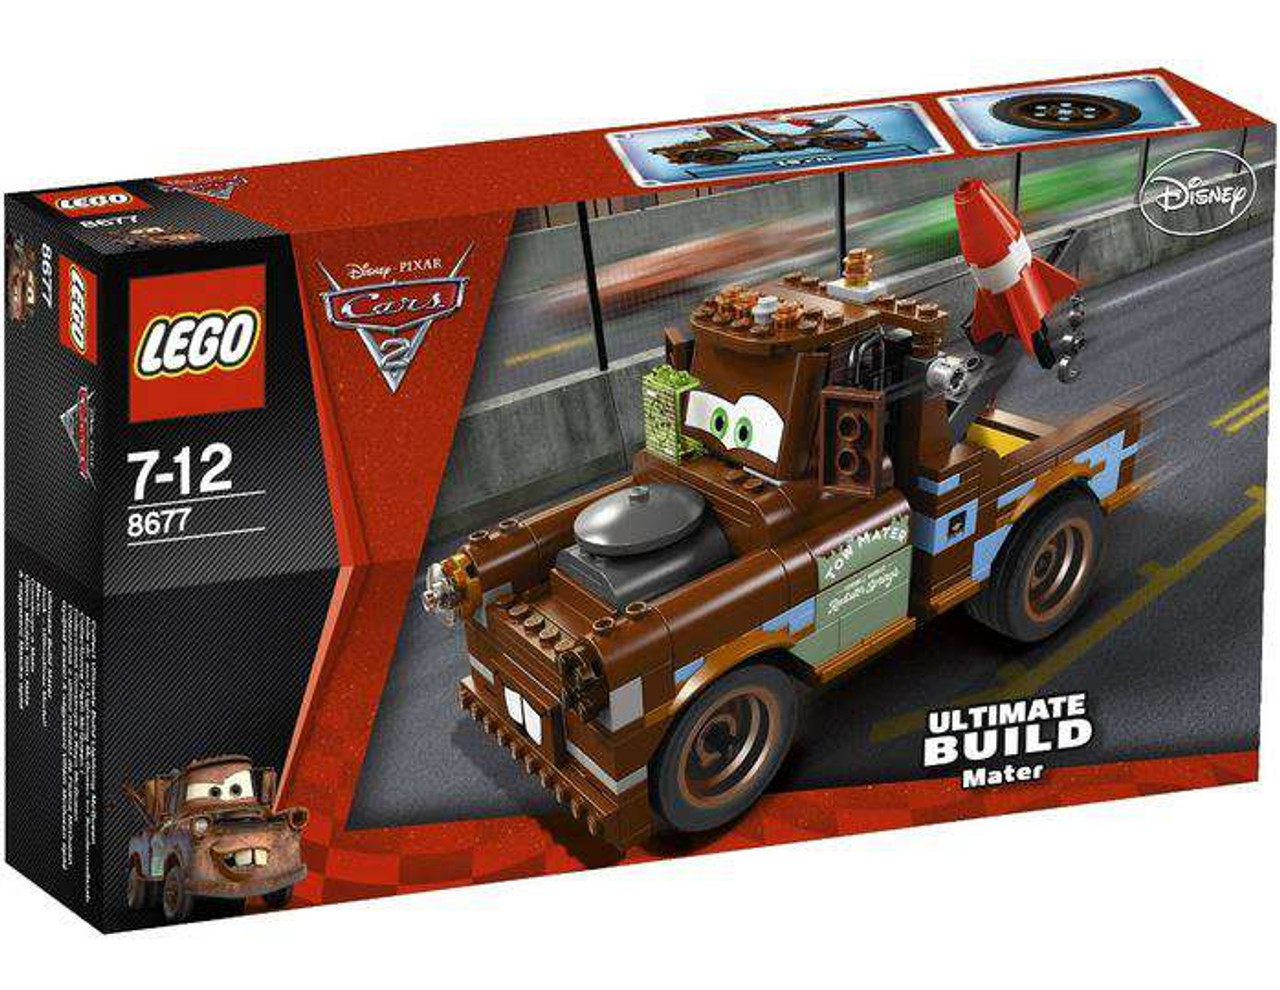 LEGO Disney Cars Cars 2 Ultimate Build Mater Exclusive Set #8677